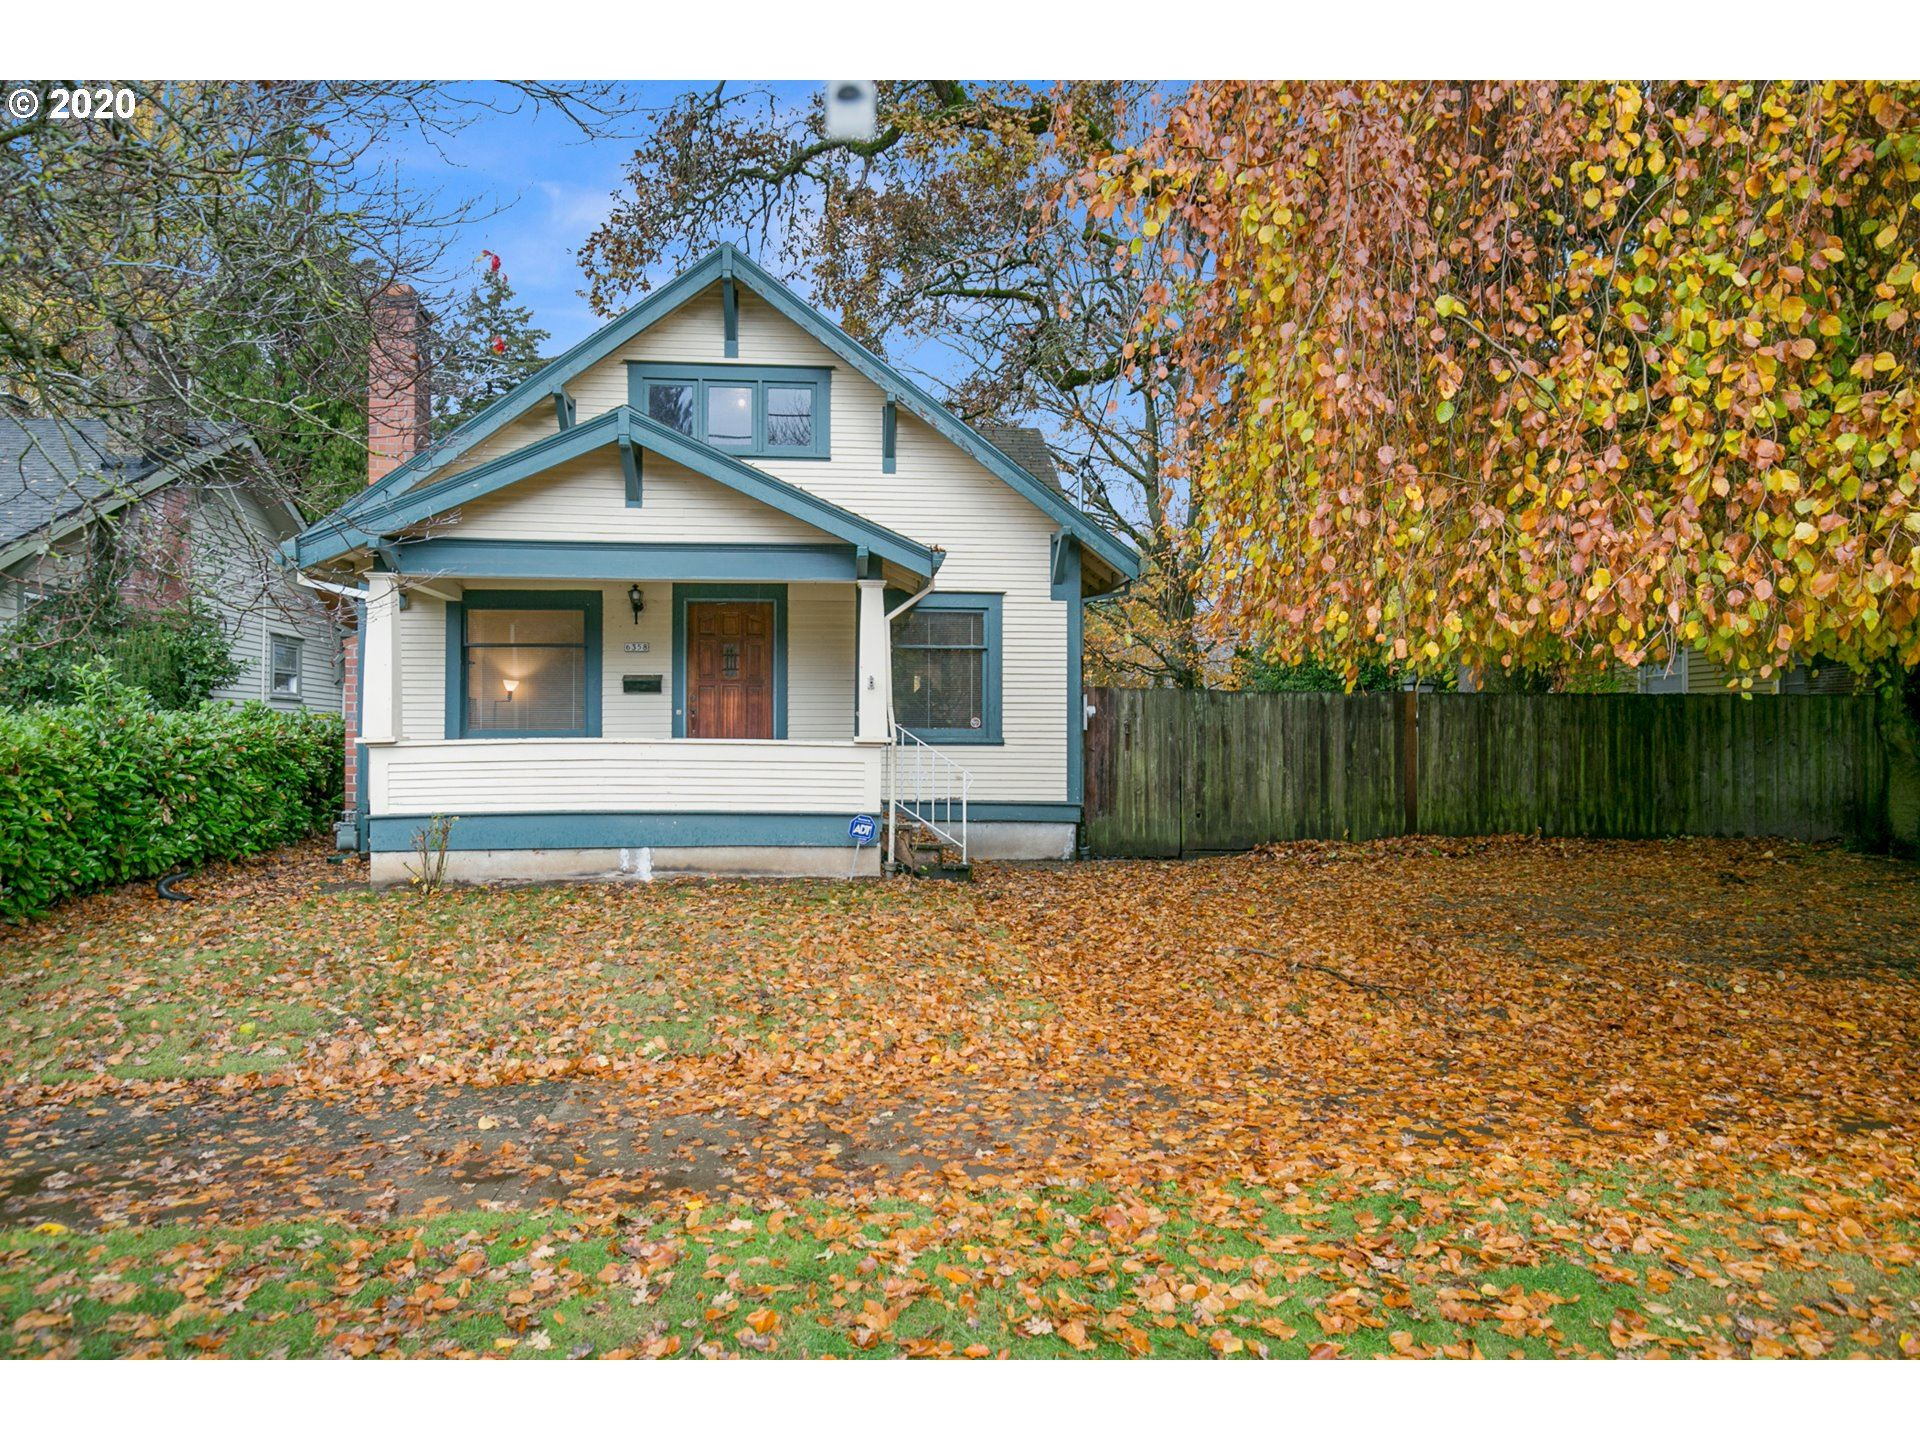 Photo for 6358 NE 31ST AVE, Portland, OR 97211 (MLS # 20322179)